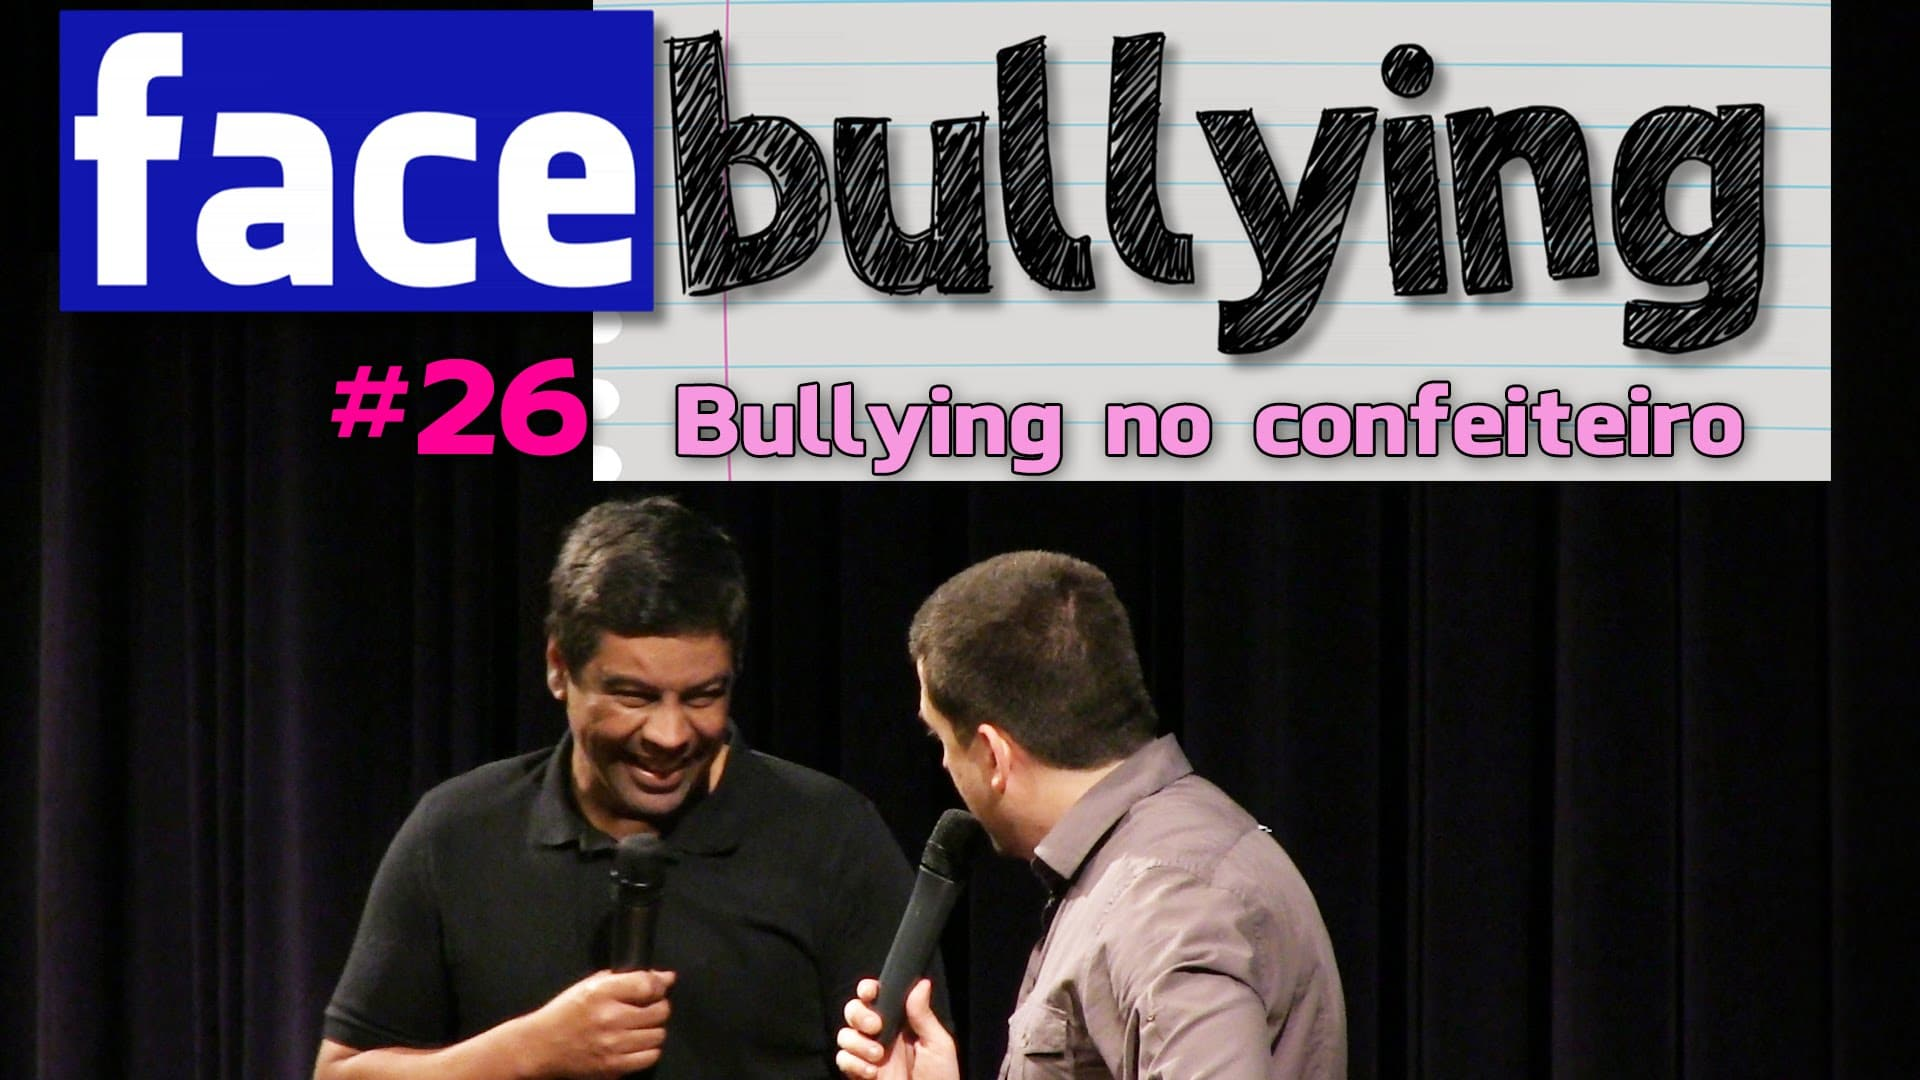 Facebullying - Bullying no confeiteiro 5